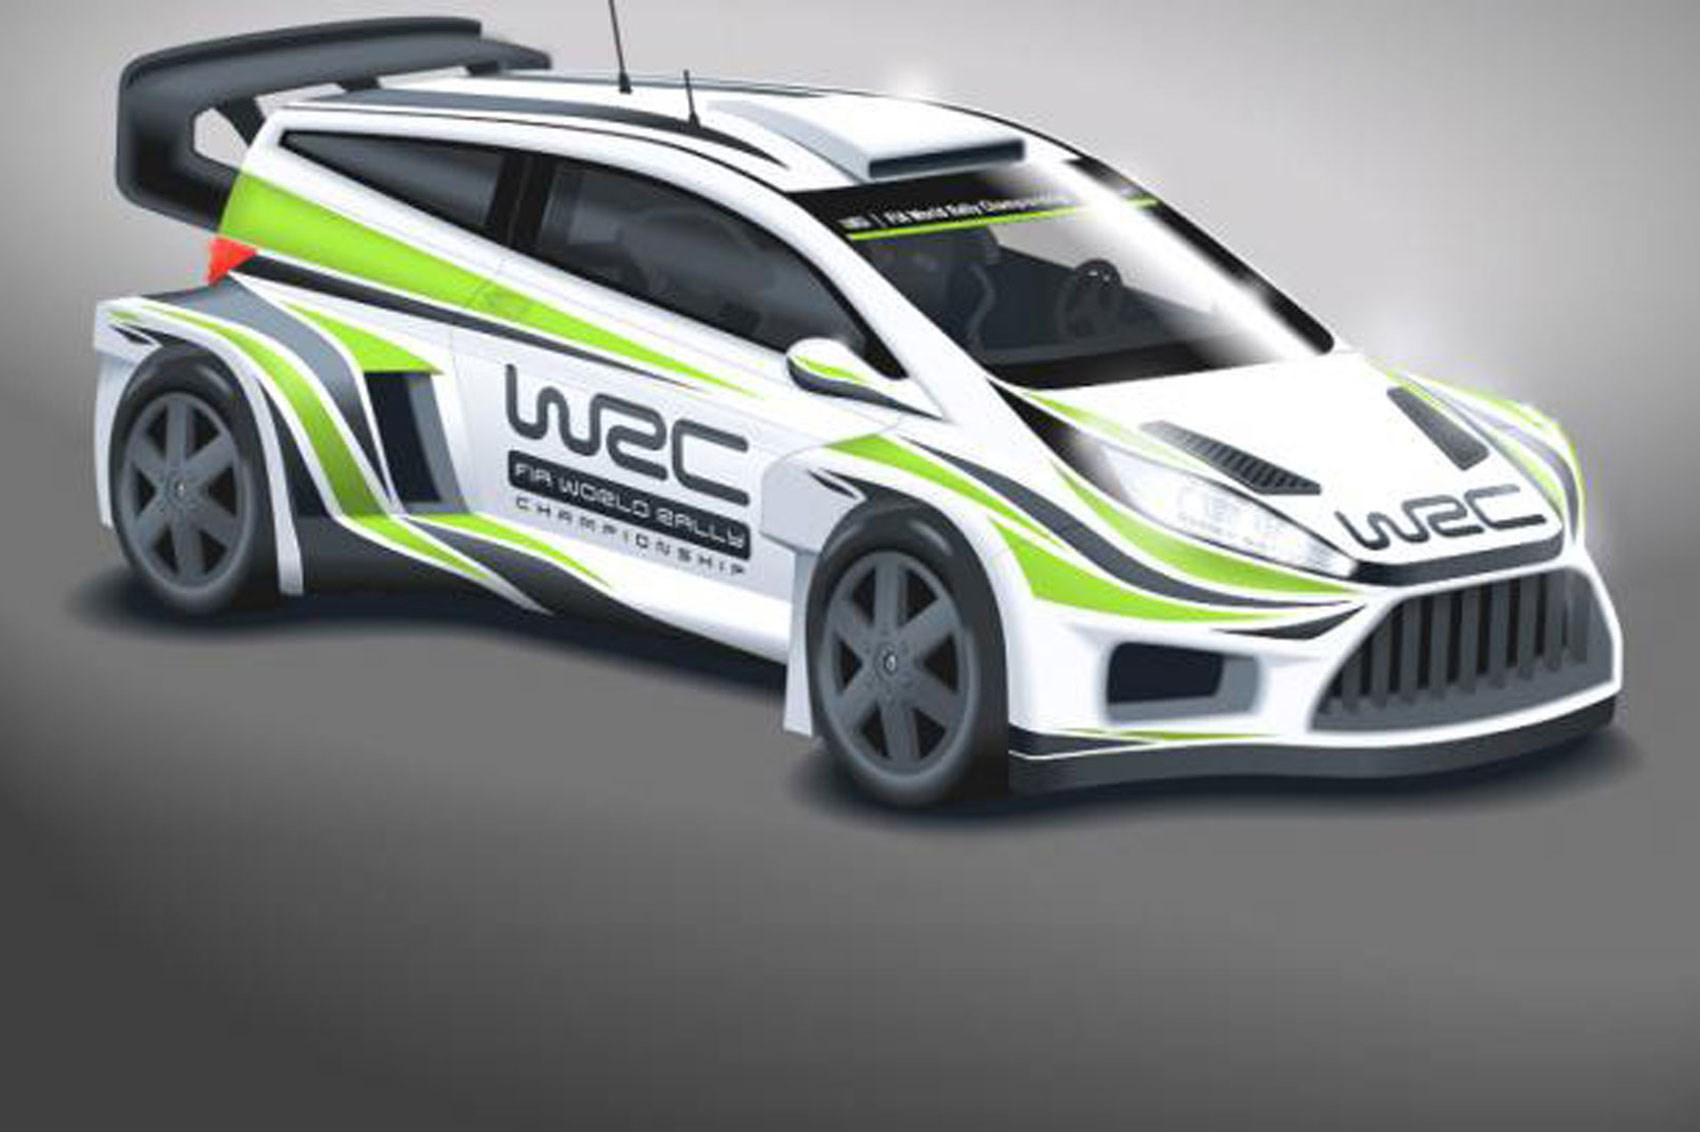 Ultrablogus  Splendid Wild New Look For Wrc Cars In  By Car Magazine With Great Wrc Cars Will Get Wider Bodies Bigger Wings And More Power For  With Beauteous Smart Car Interior Also Vw Caravelle Interior In Addition New Golf Interior And Volvo V Interior Dimensions As Well As Range Rover Vogue Interior Additionally  Series Interior From Carmagazinecouk With Ultrablogus  Great Wild New Look For Wrc Cars In  By Car Magazine With Beauteous Wrc Cars Will Get Wider Bodies Bigger Wings And More Power For  And Splendid Smart Car Interior Also Vw Caravelle Interior In Addition New Golf Interior From Carmagazinecouk